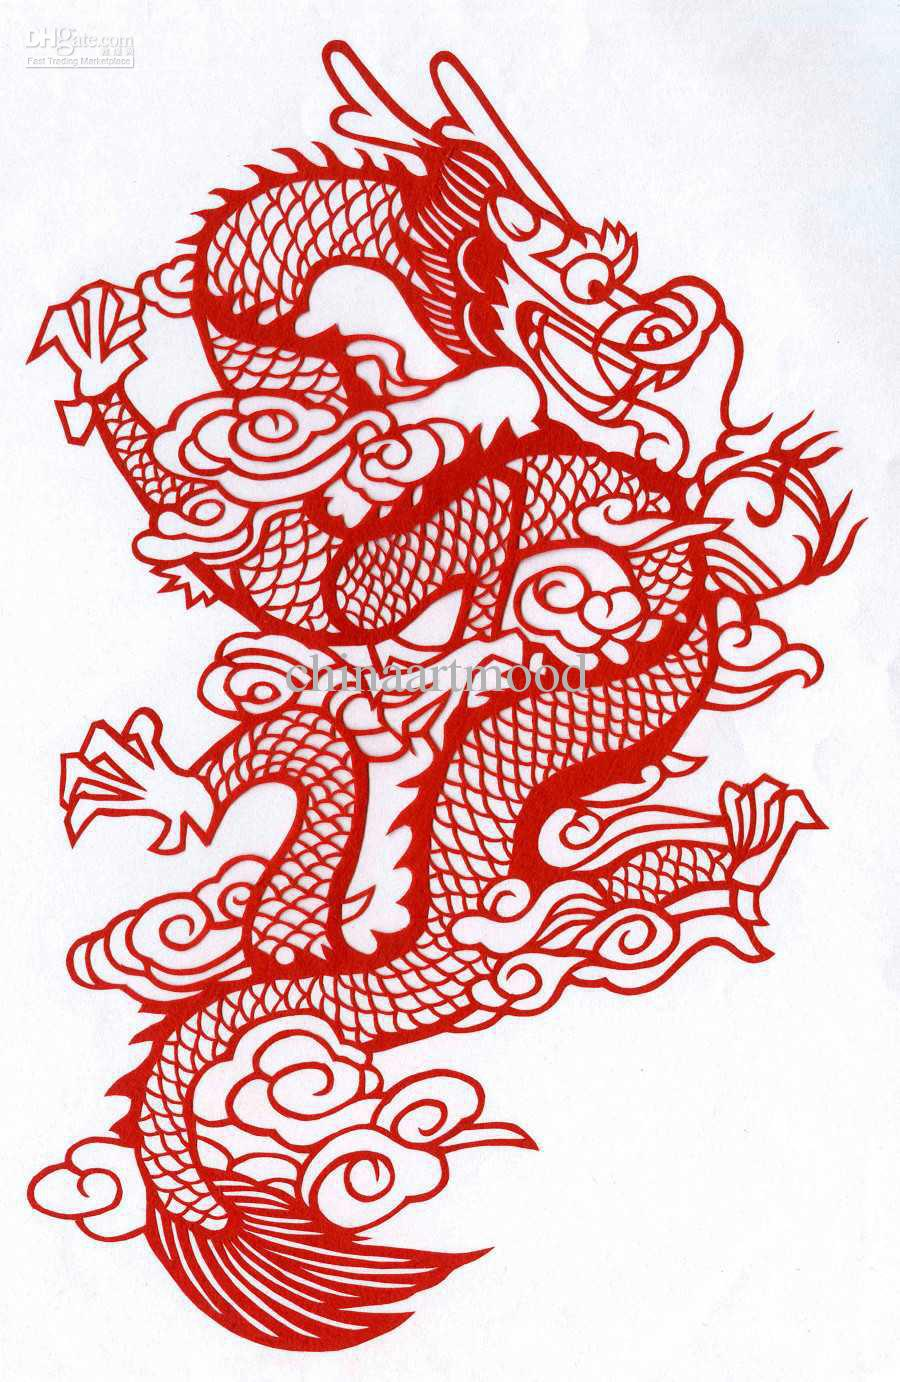 paper-cut-chinese-paper-cut-craft-china-culture.jpg